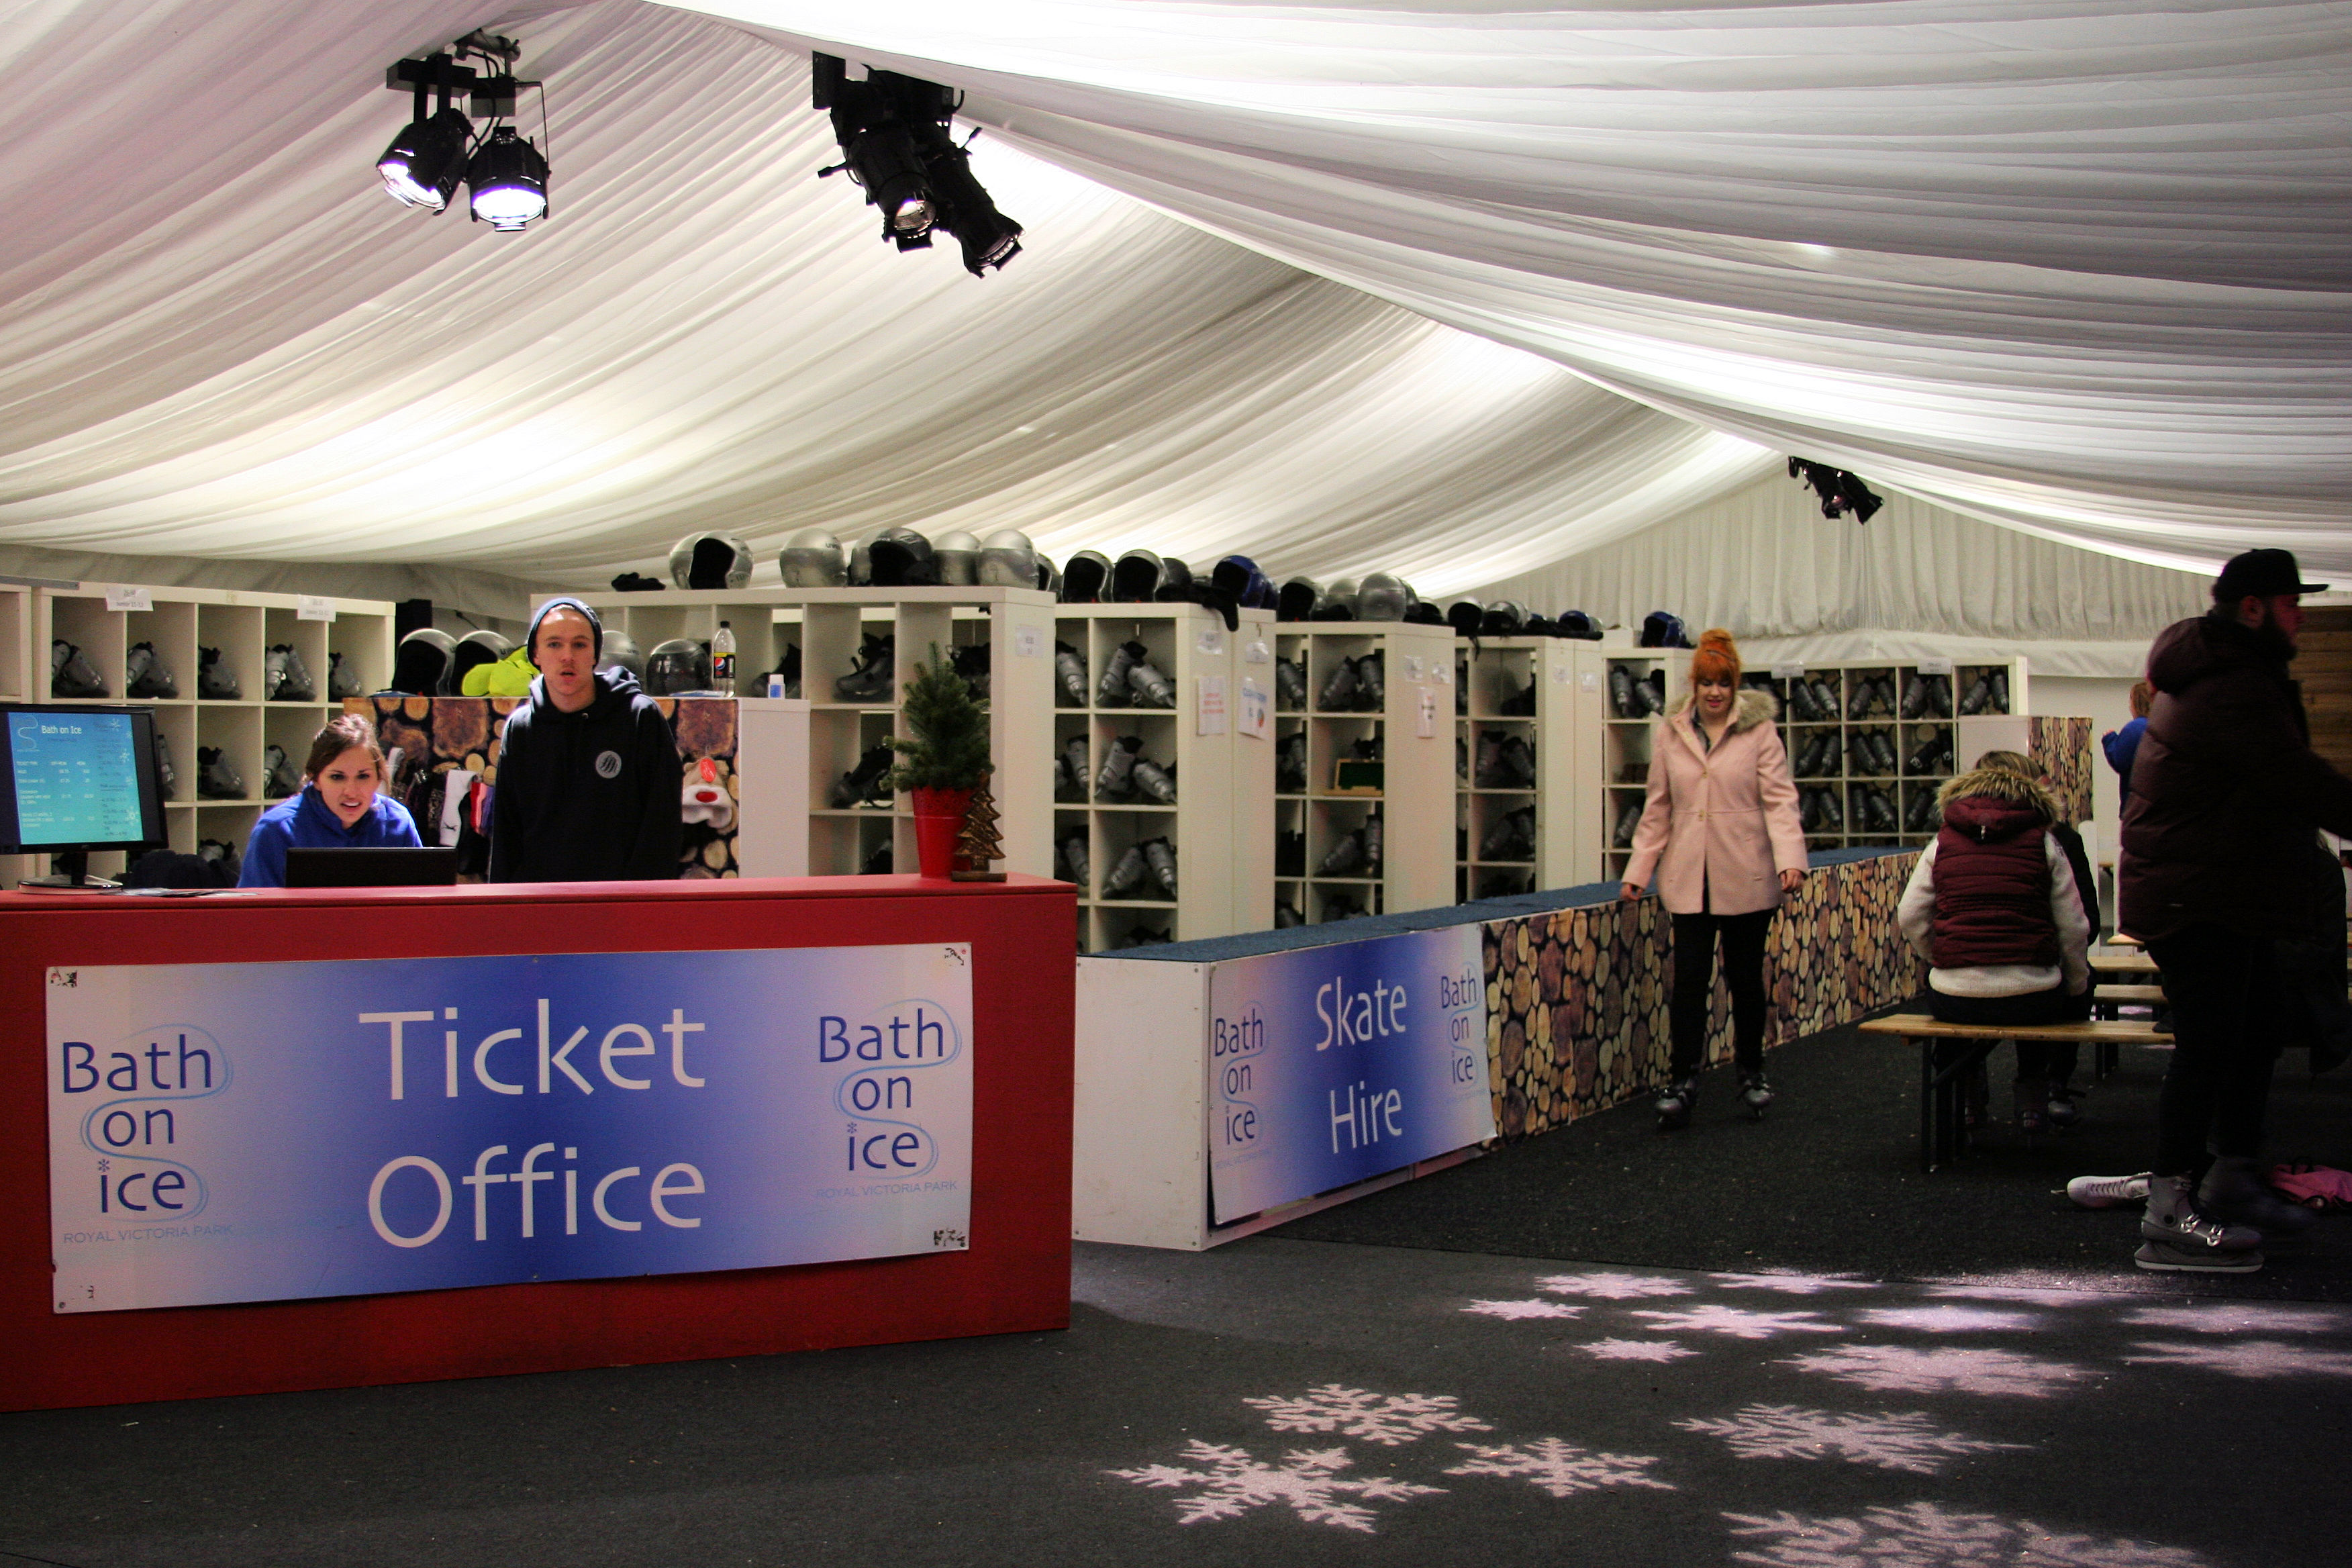 Bath on Ice Ticket Office Ice Skate Hire